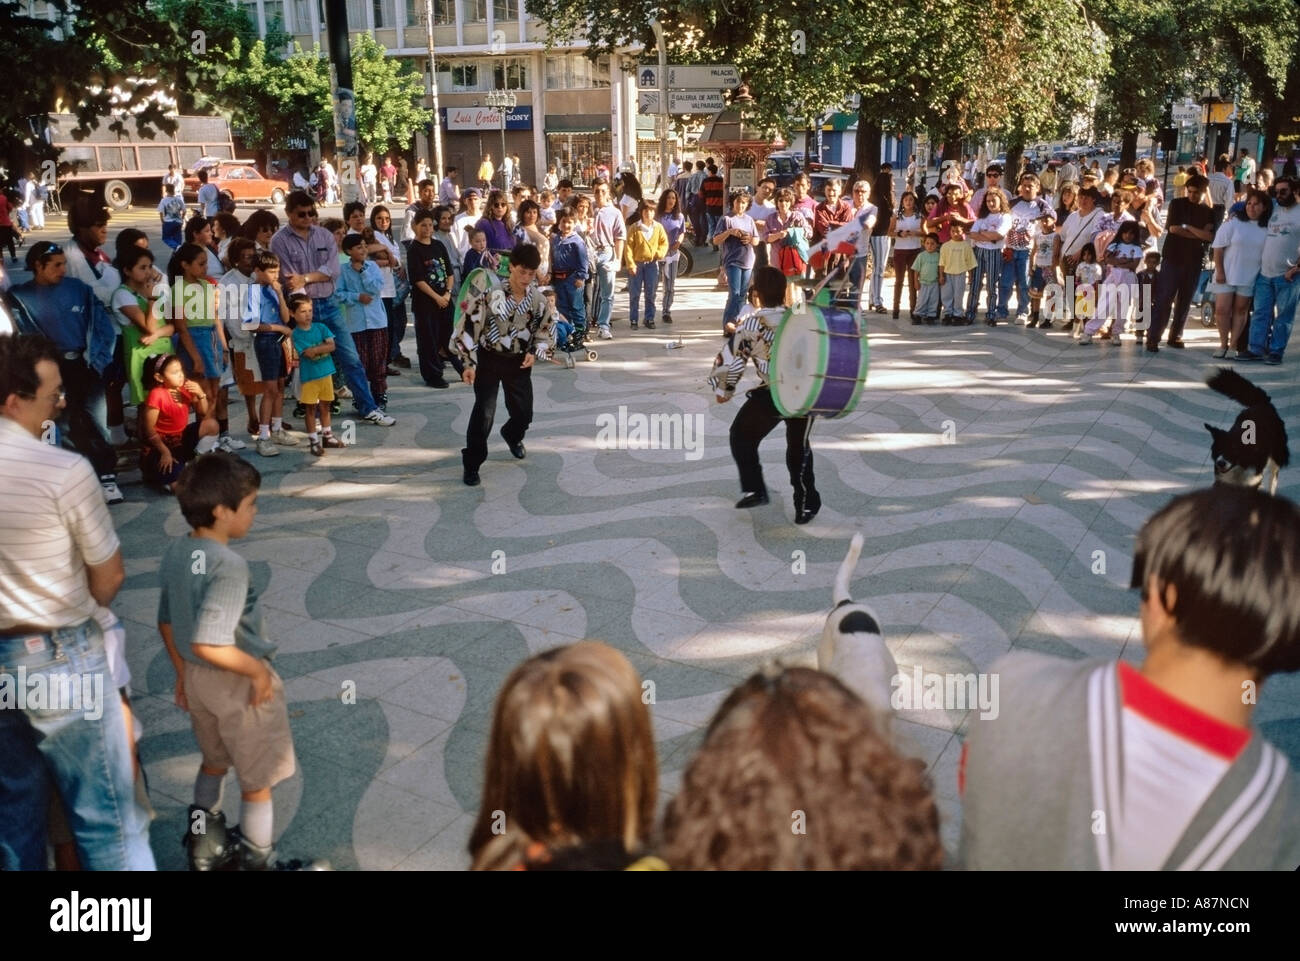 Native Chilean street performers entertain spectators with dancing and bass drums in Parque Italia Valparaíso Chile Stock Photo